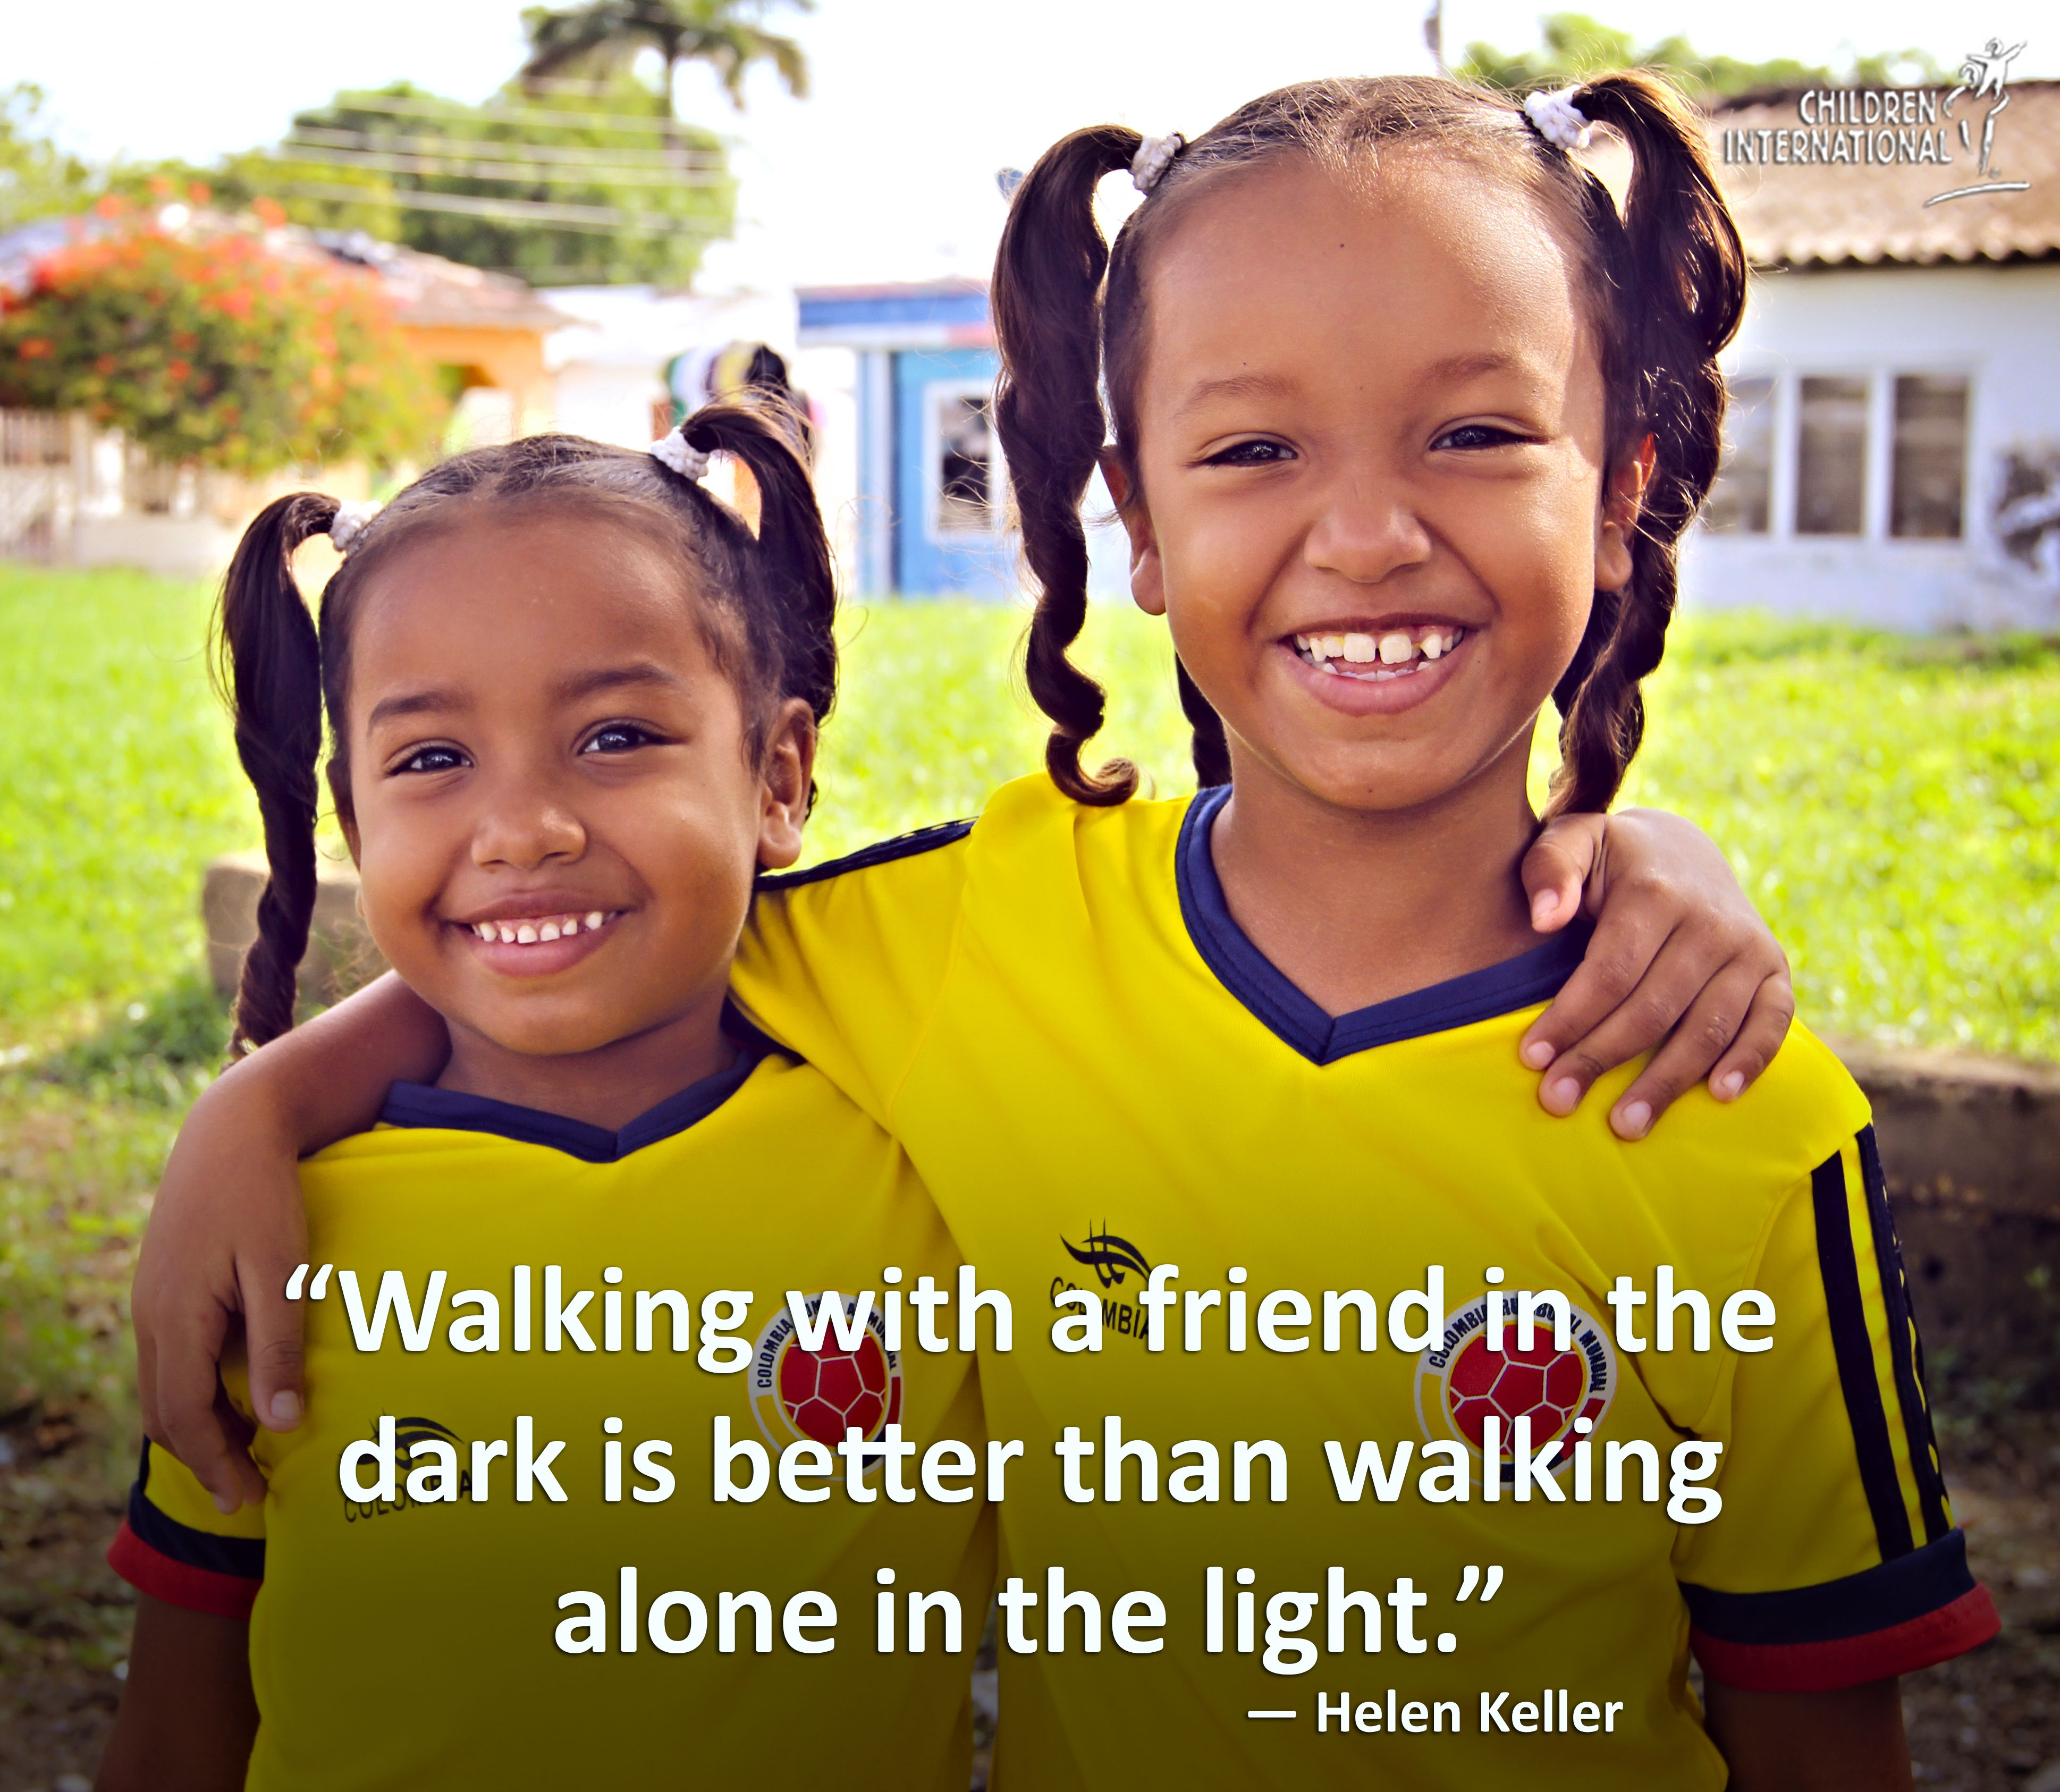 Walking with a friend in the dark is better than walking